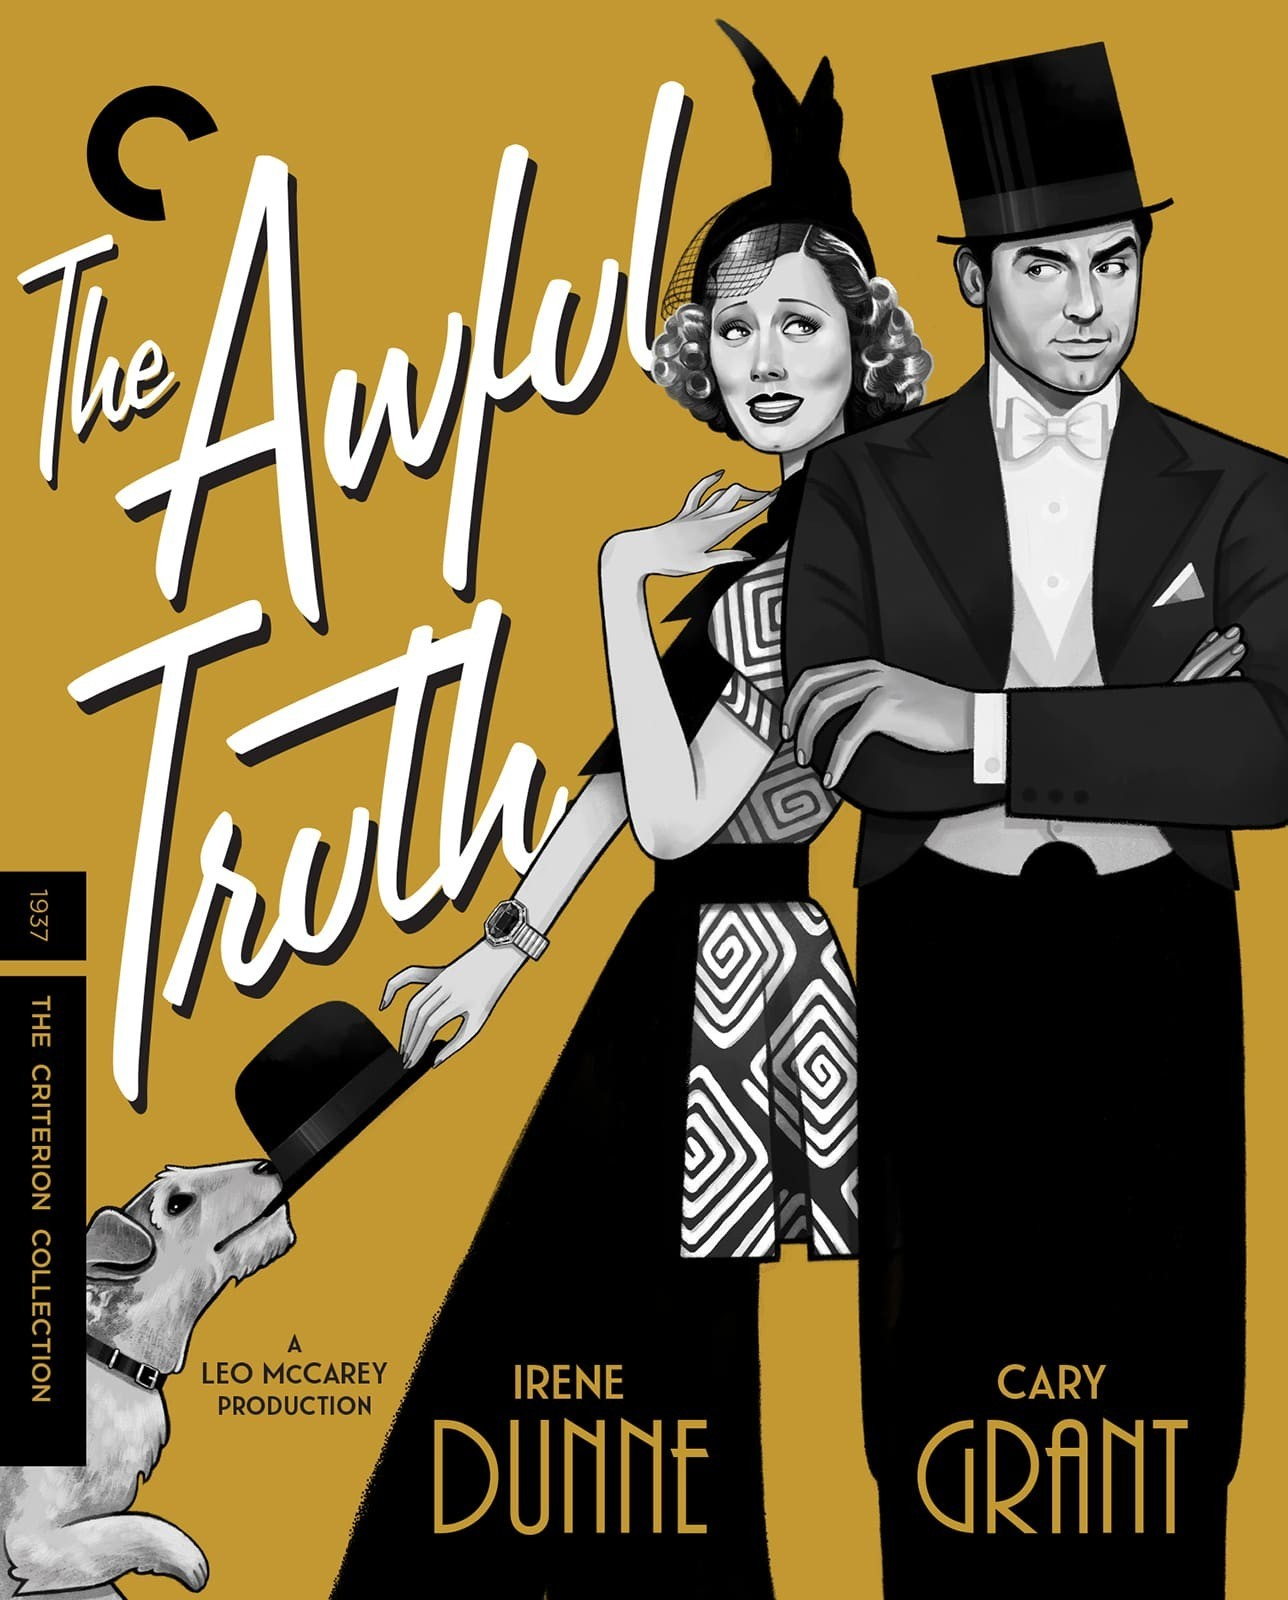 The Awful Truth (The Criterion Collection)(1937) Blu-ray